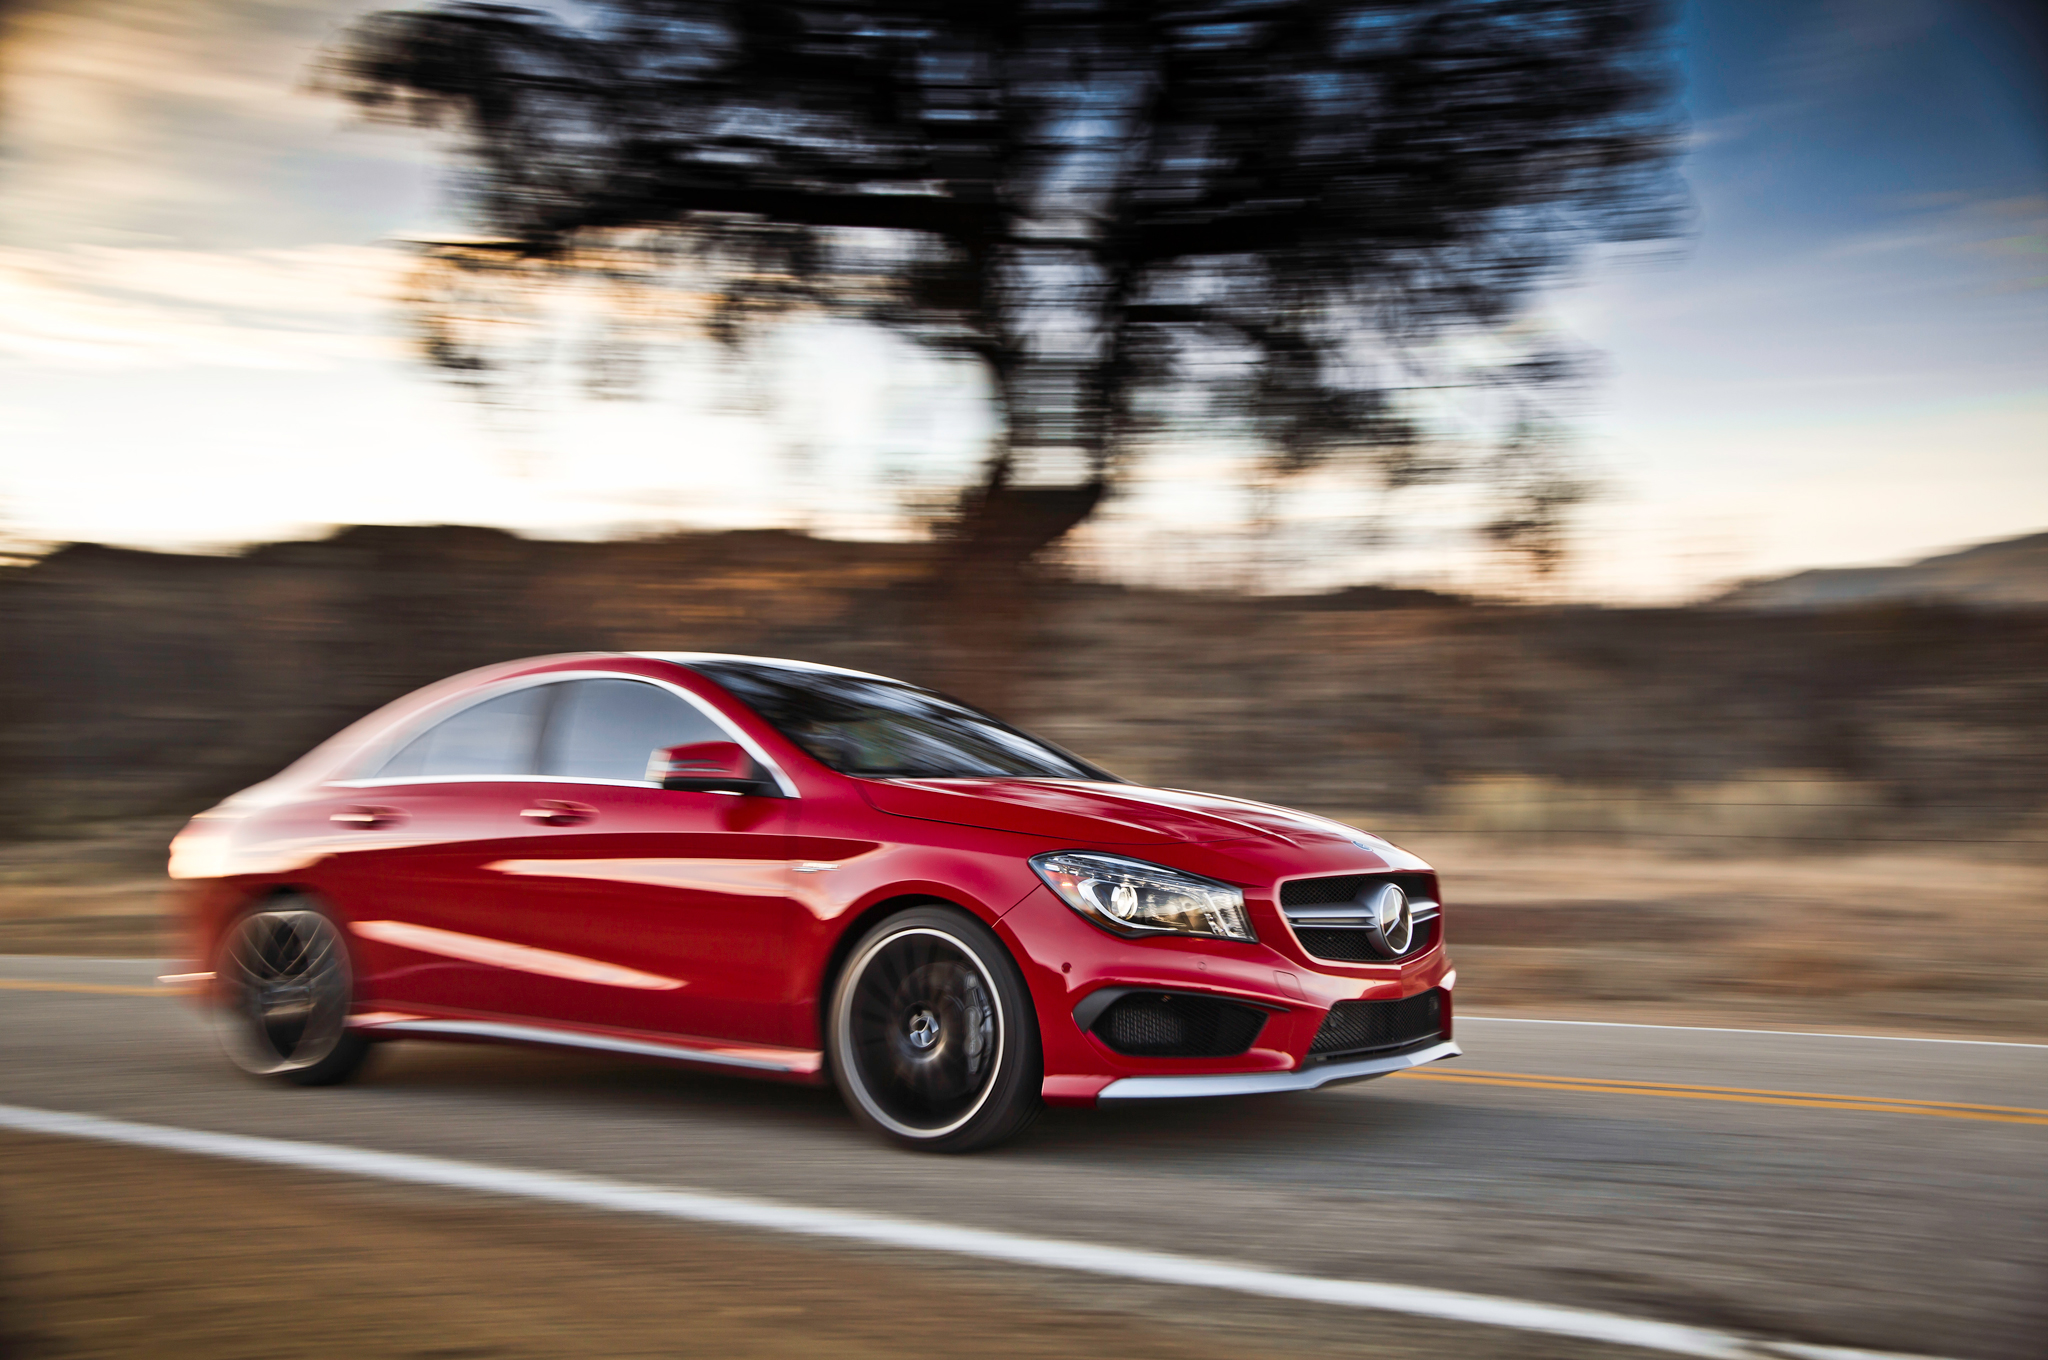 New Muscle-Car Method: Turbo, AWD, and a Luxe Badge - The Kiinote